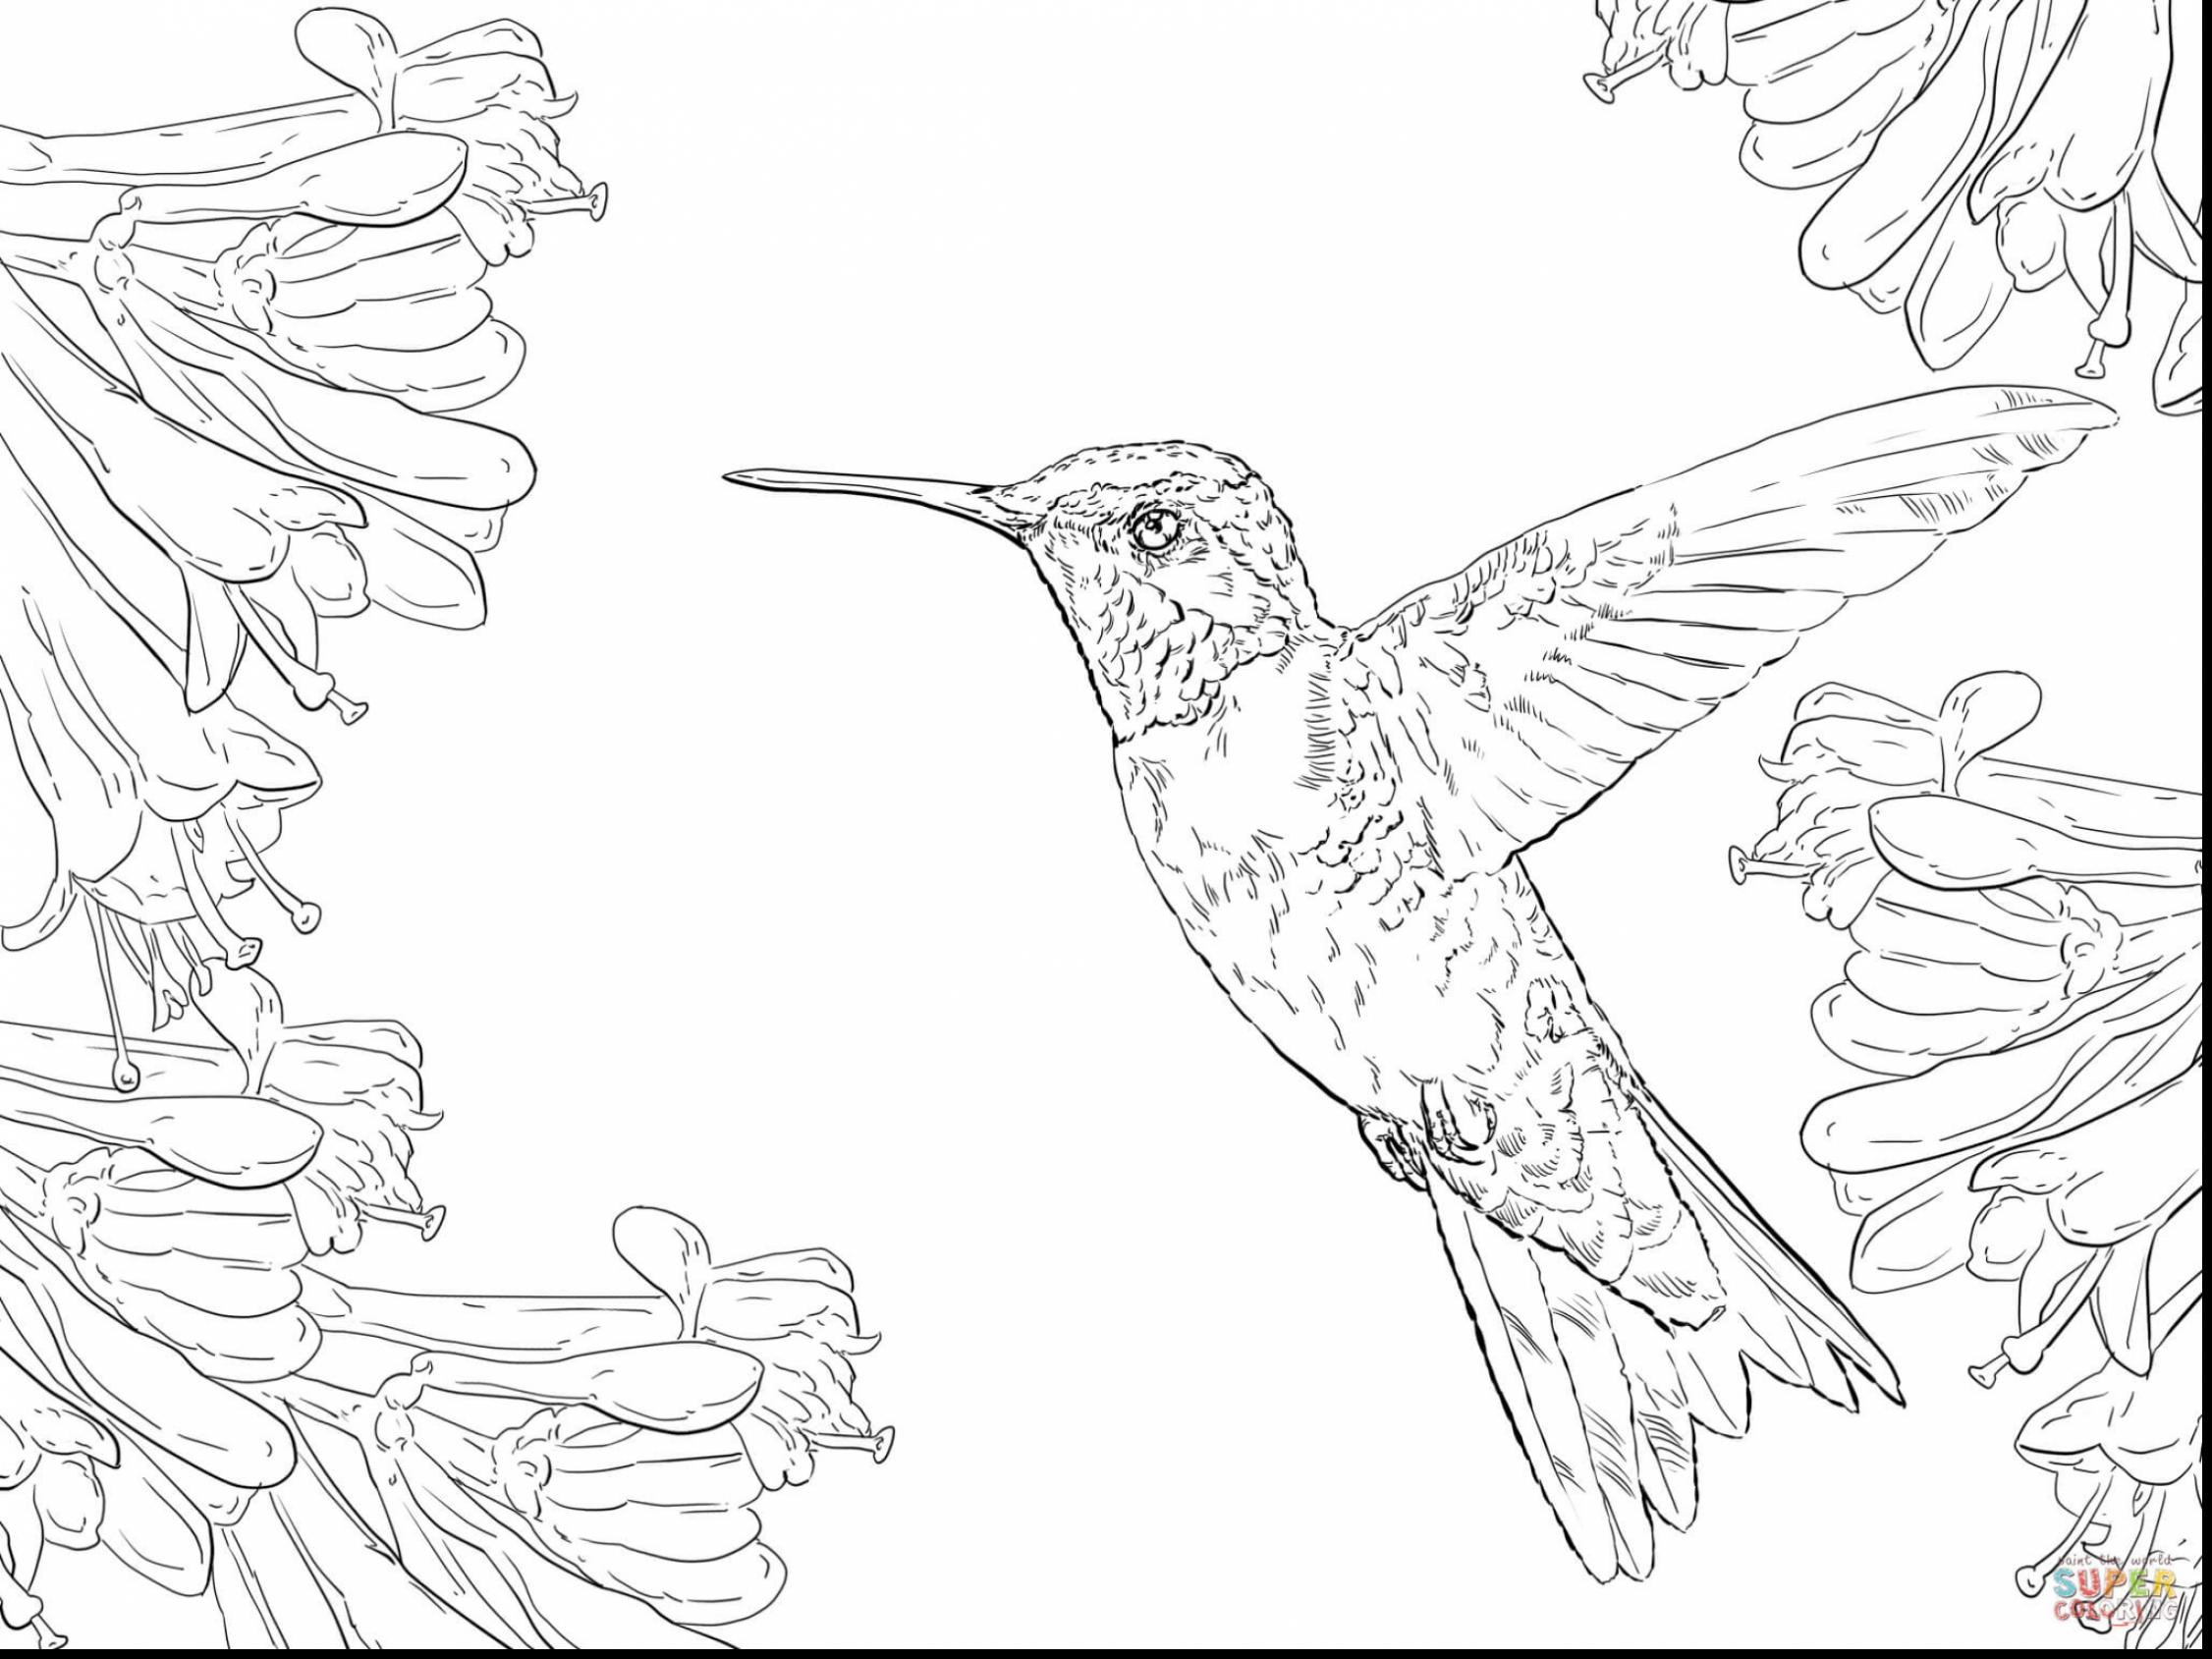 2252x1689 Hummingbird Animal Planet Free Draw To Color